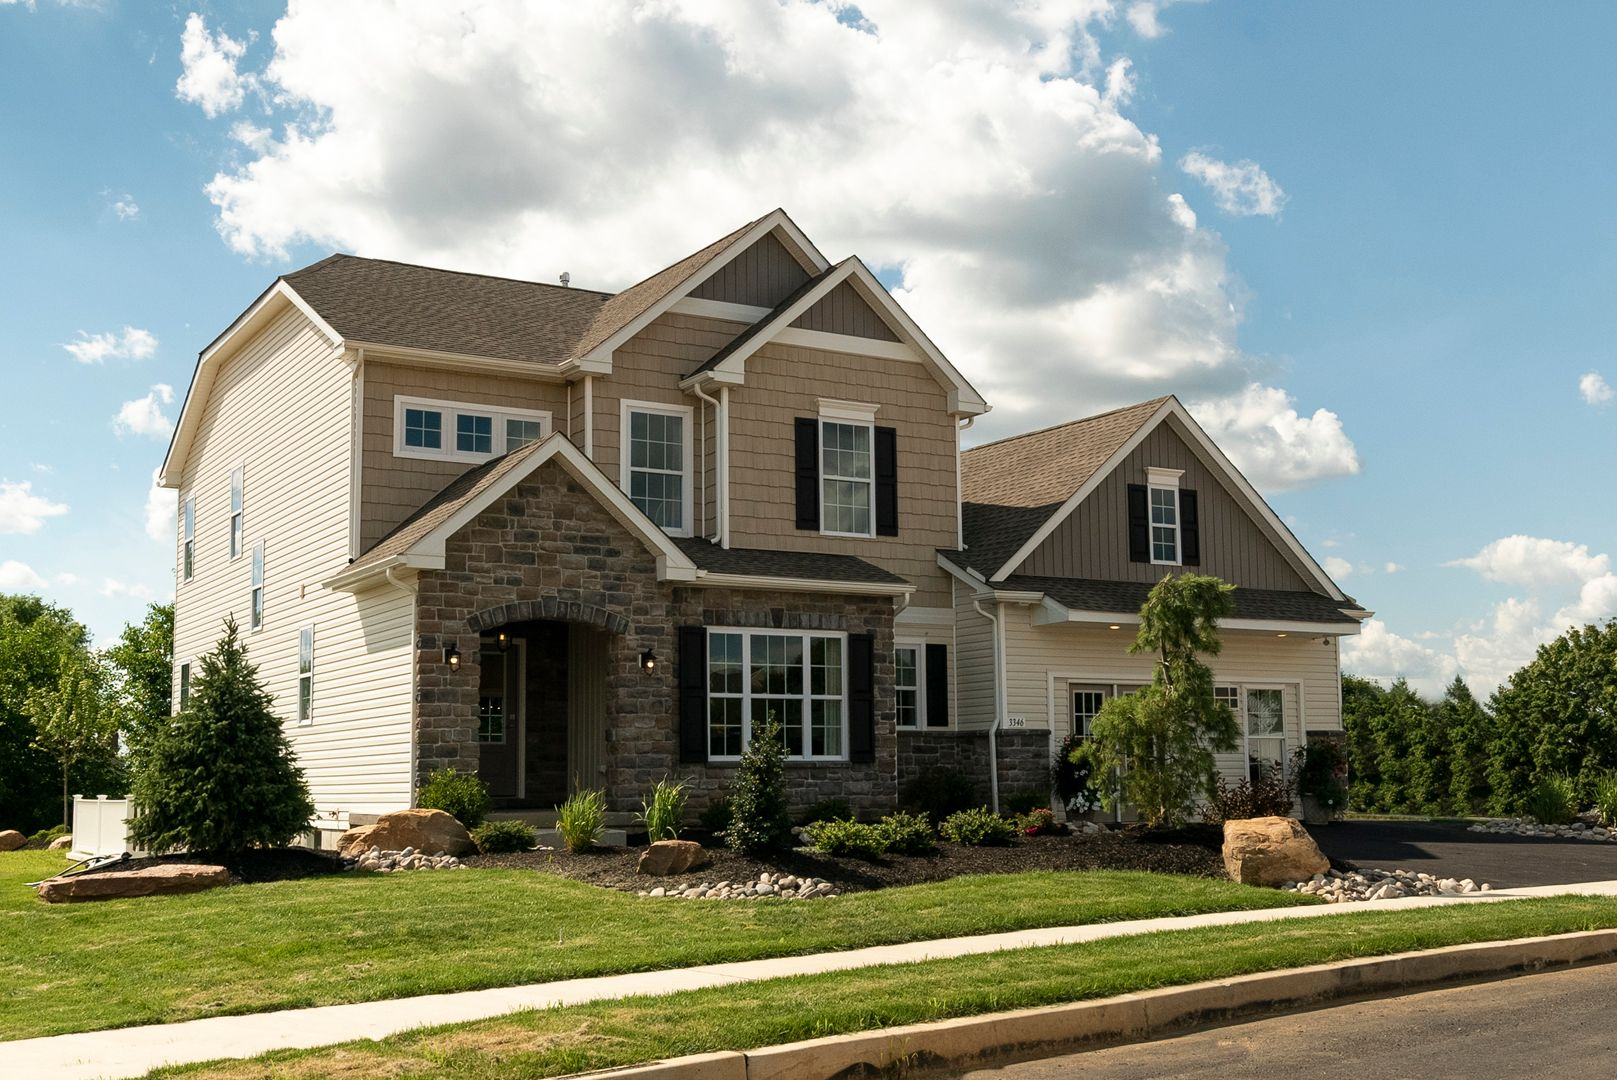 'Millbrook Estates' by Tuskes Homes in Allentown-Bethlehem